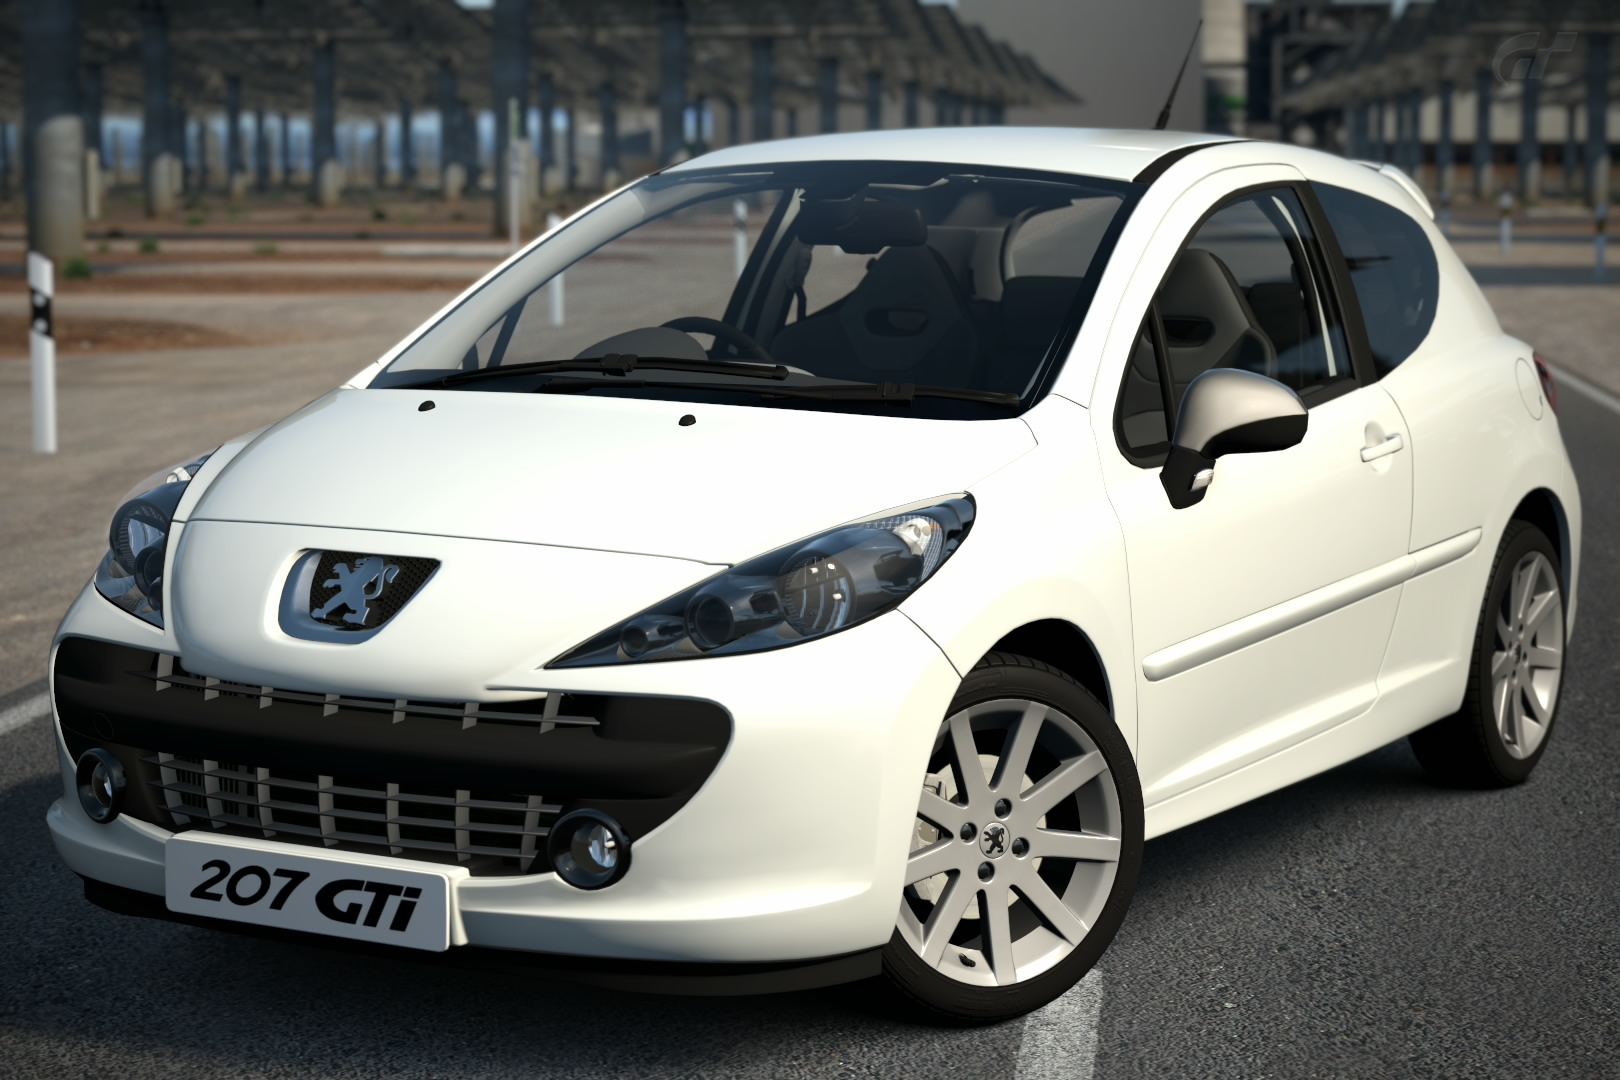 peugeot 207 gti 39 07 gran turismo wiki fandom powered by wikia. Black Bedroom Furniture Sets. Home Design Ideas